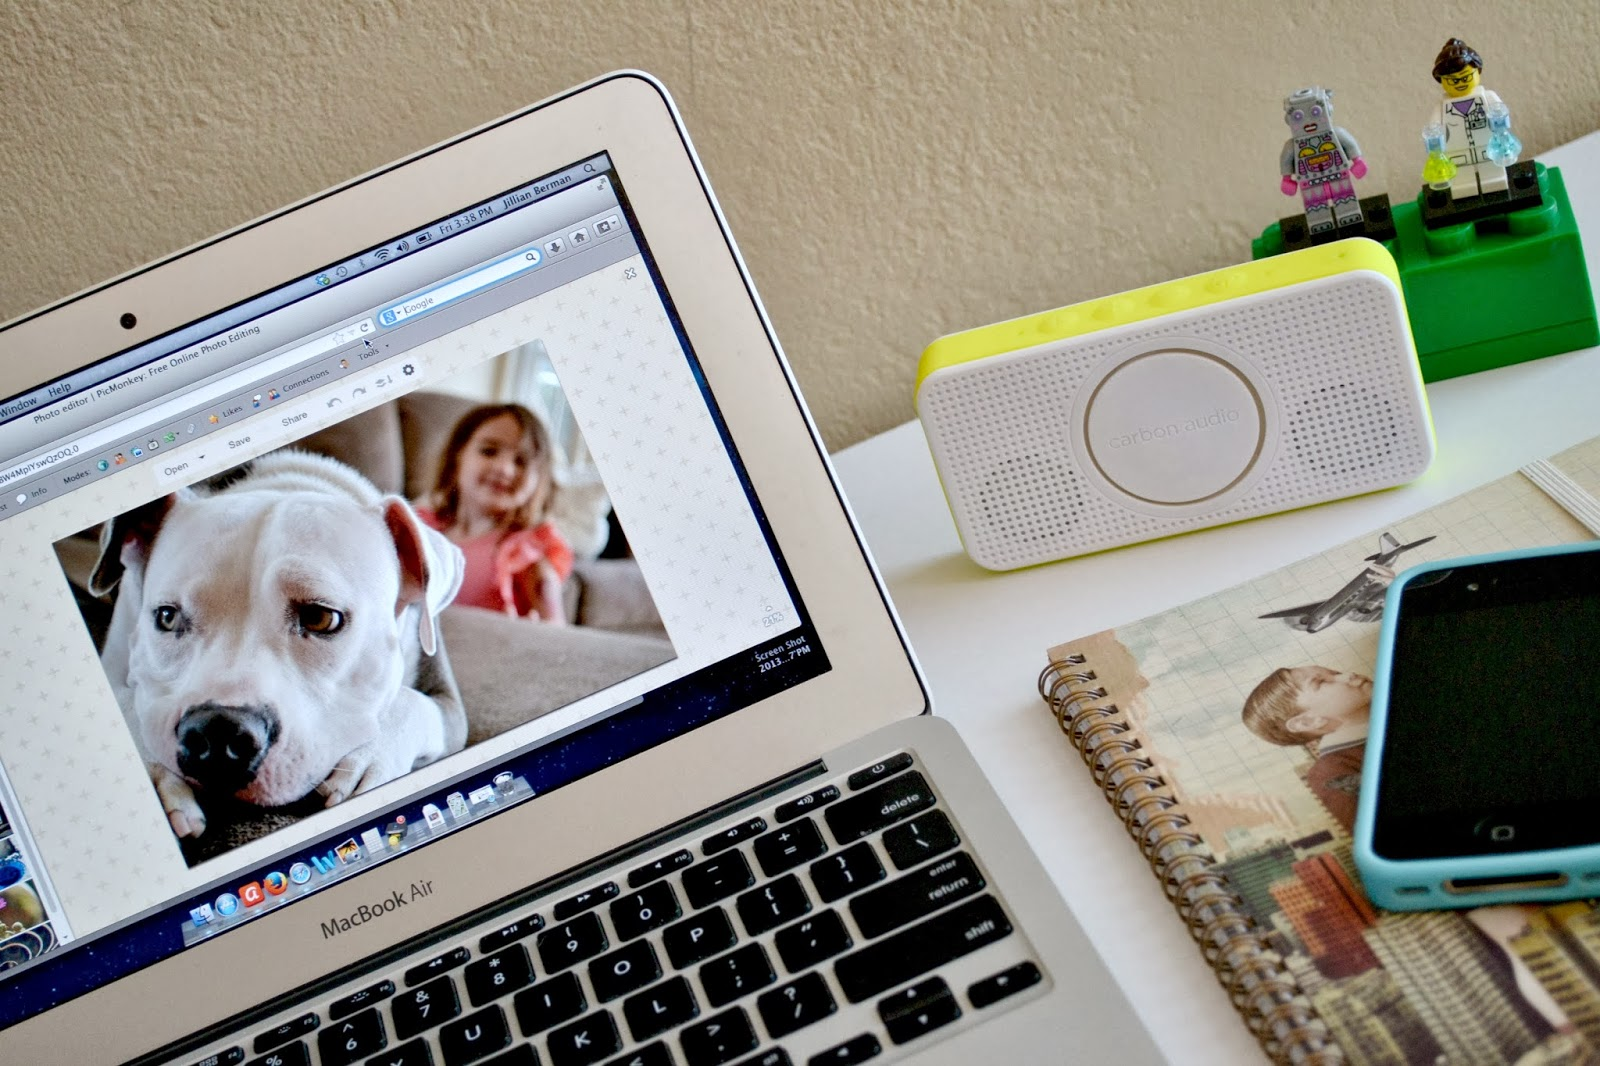 Mommy Testers, Carbon Pocket Speaker, Portable Bluetooth Speaker, Stylish Travel Essentials, #PocketBoom #shop #cbias